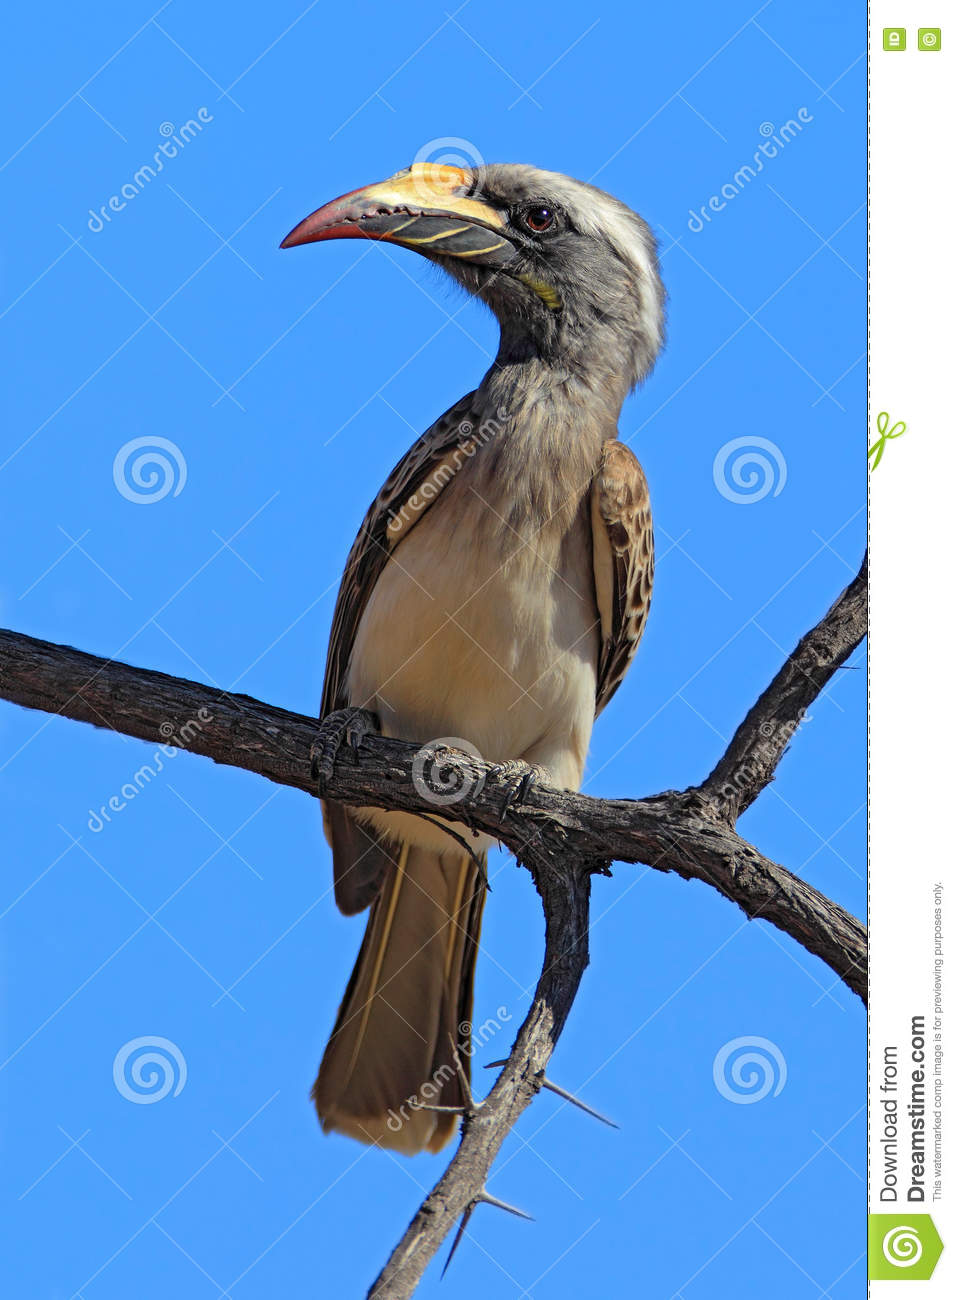 Grey Hornbill clipart #18, Download drawings